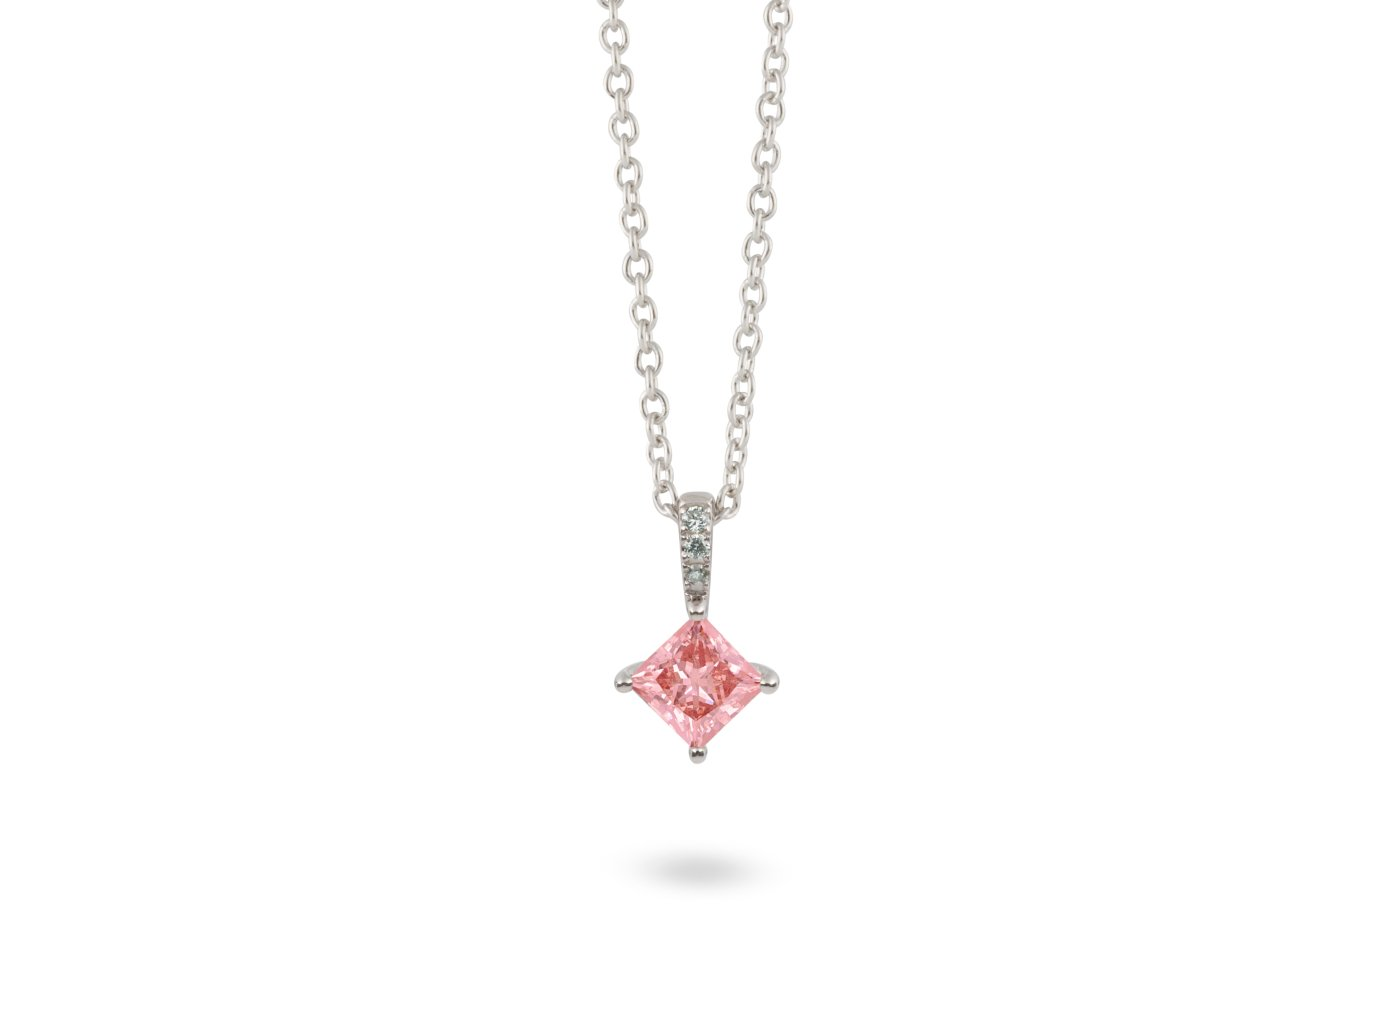 Front view of Princess pavé 1/2 carat pendant with pink and white diamonds